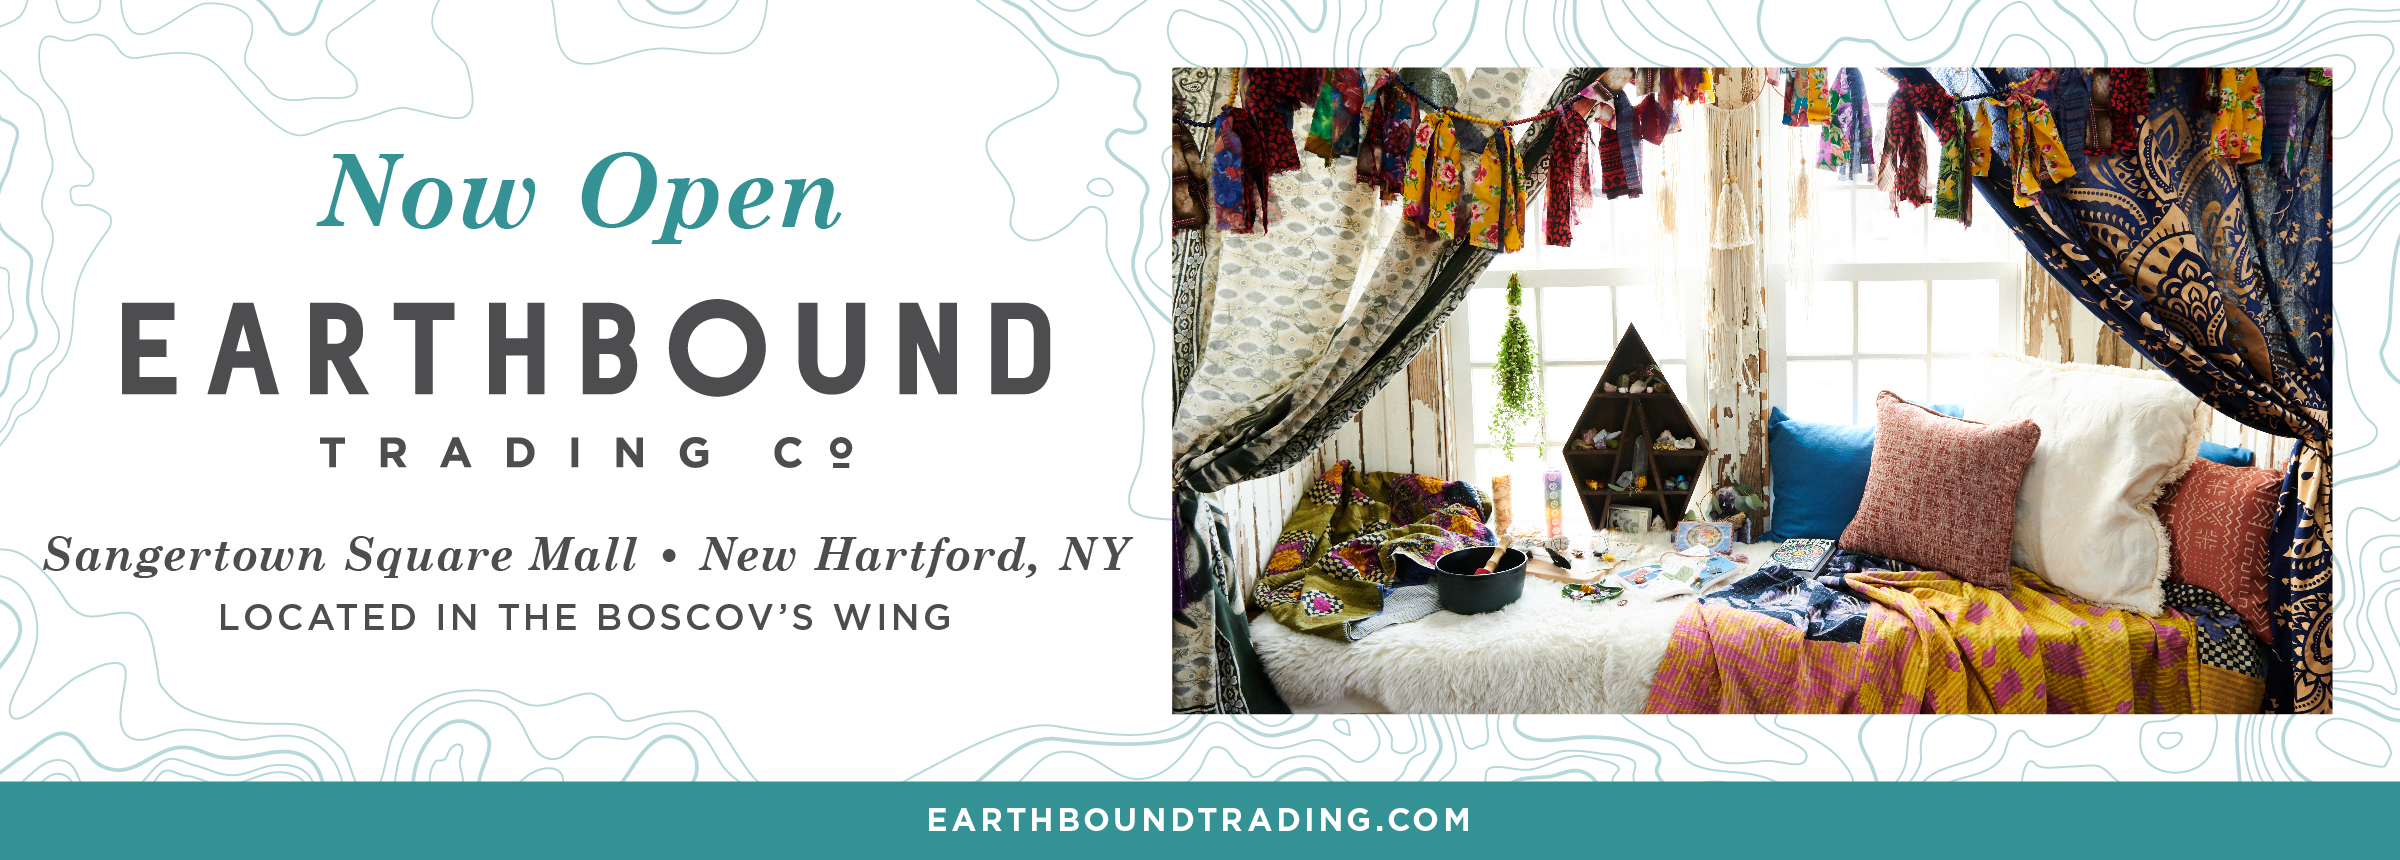 Earthbound Trading Co. Now Open